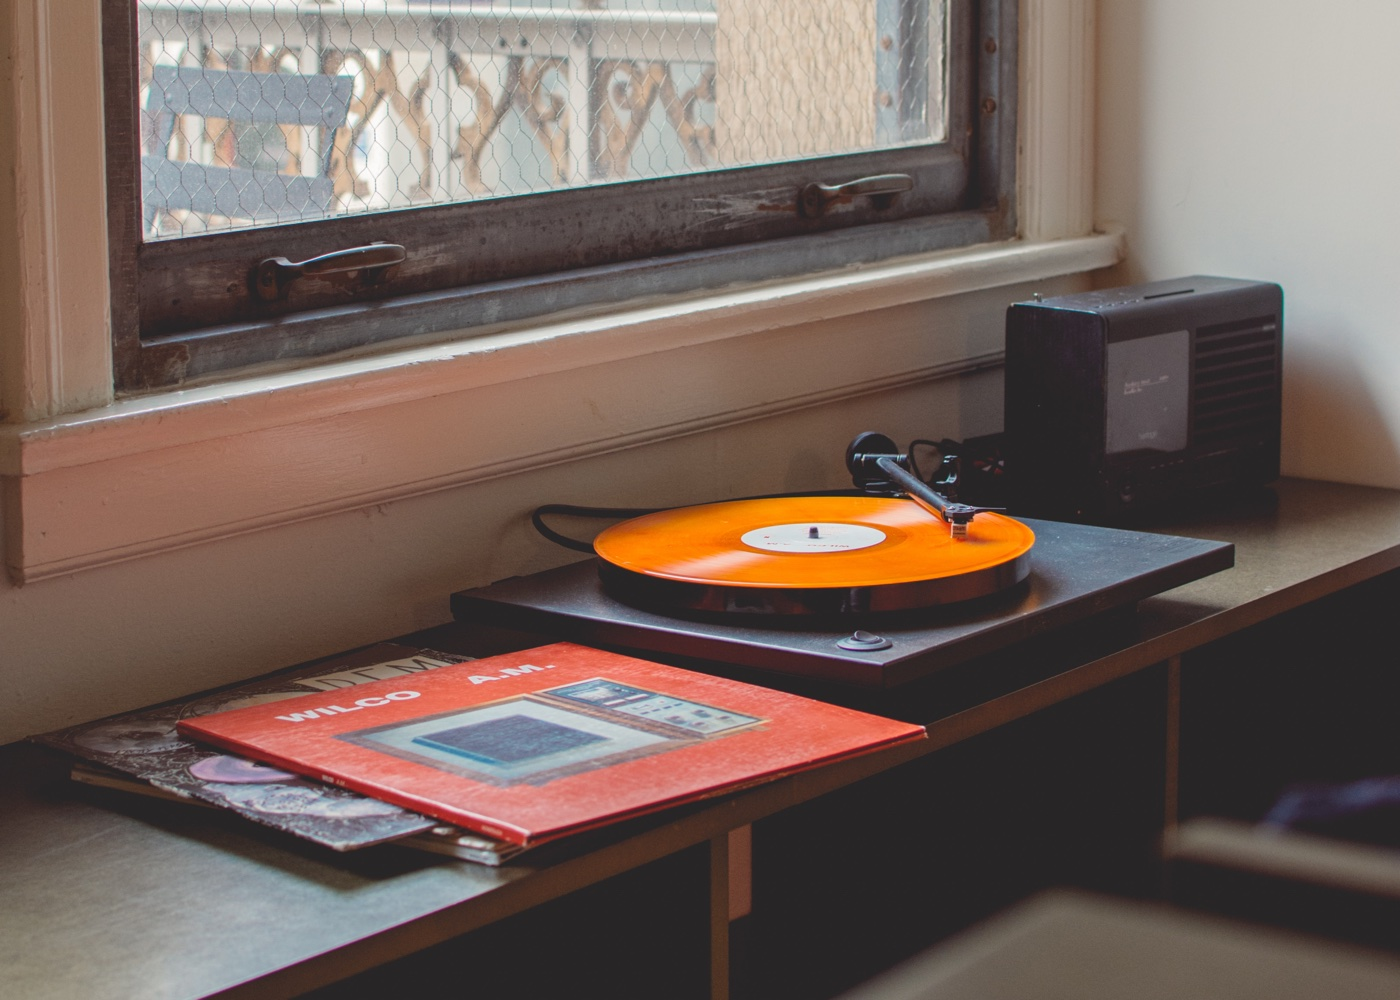 The Internet Archive is now working to preserve vinyl LPs